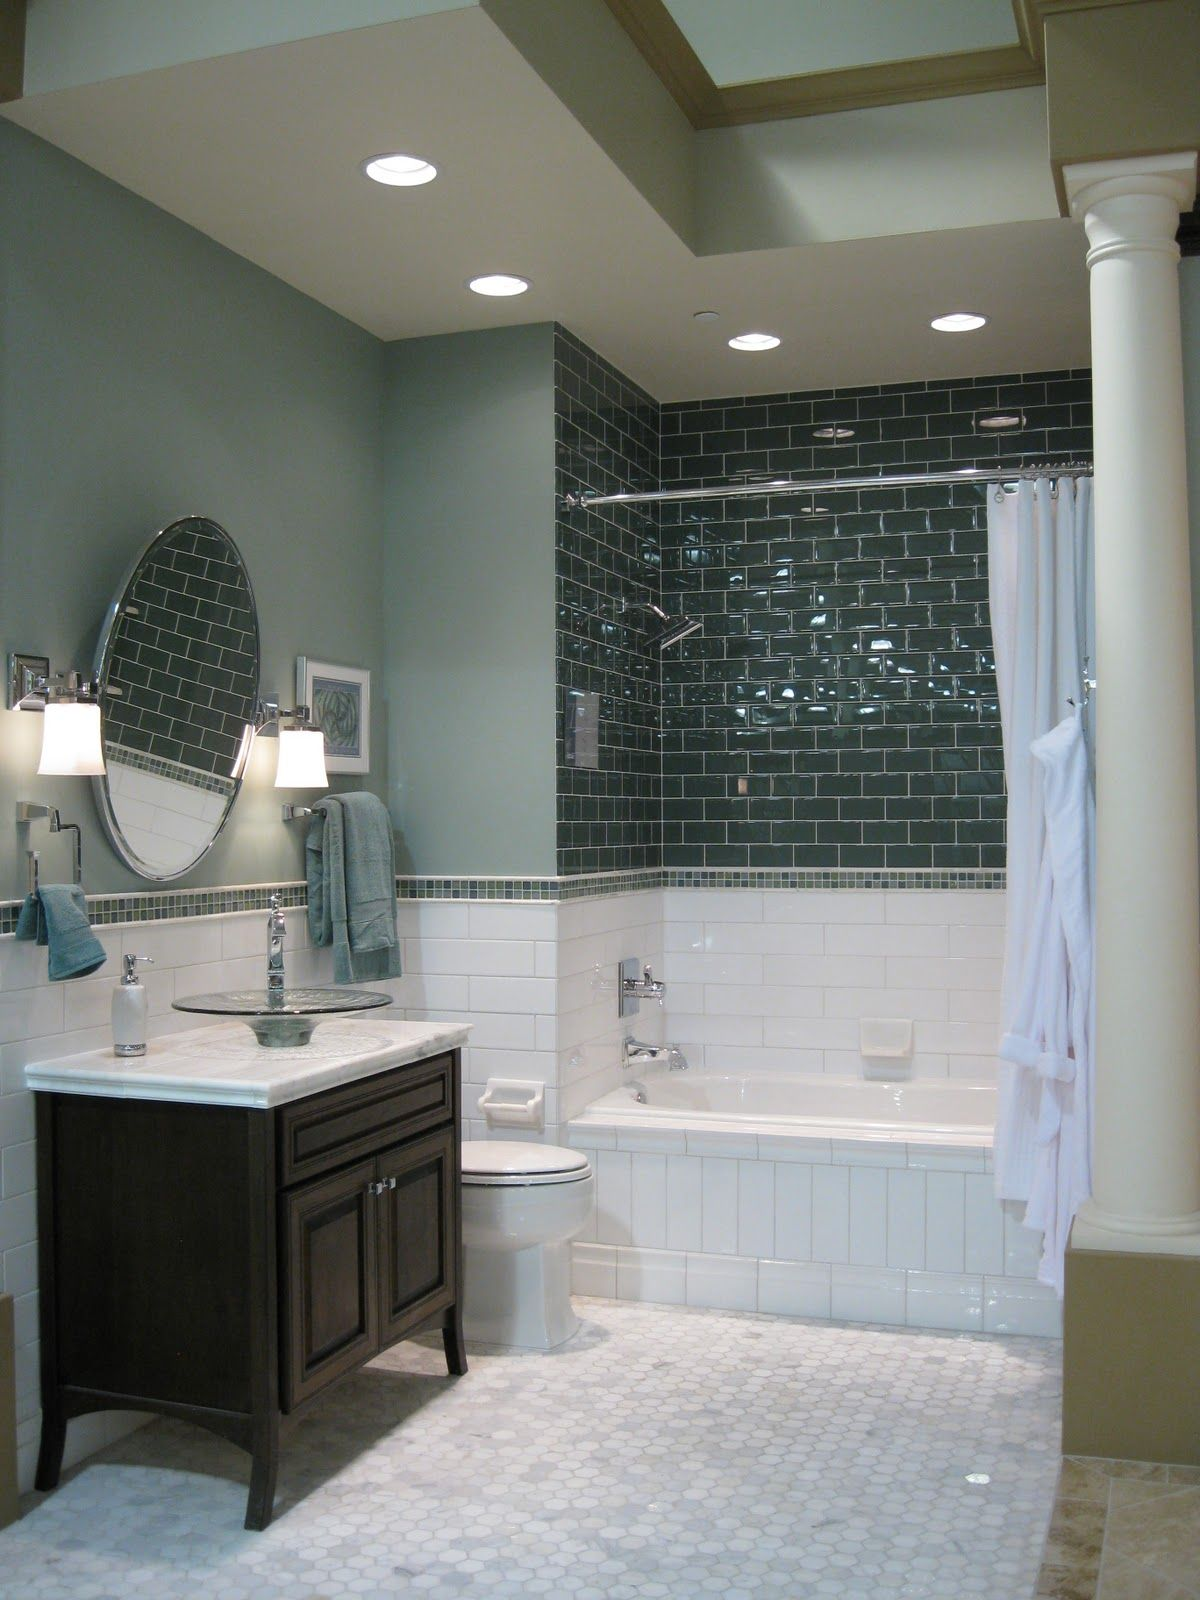 cost of tile for bathroom floor%0A Floor tileYES  Sub green tile  dark wood double vanity  but